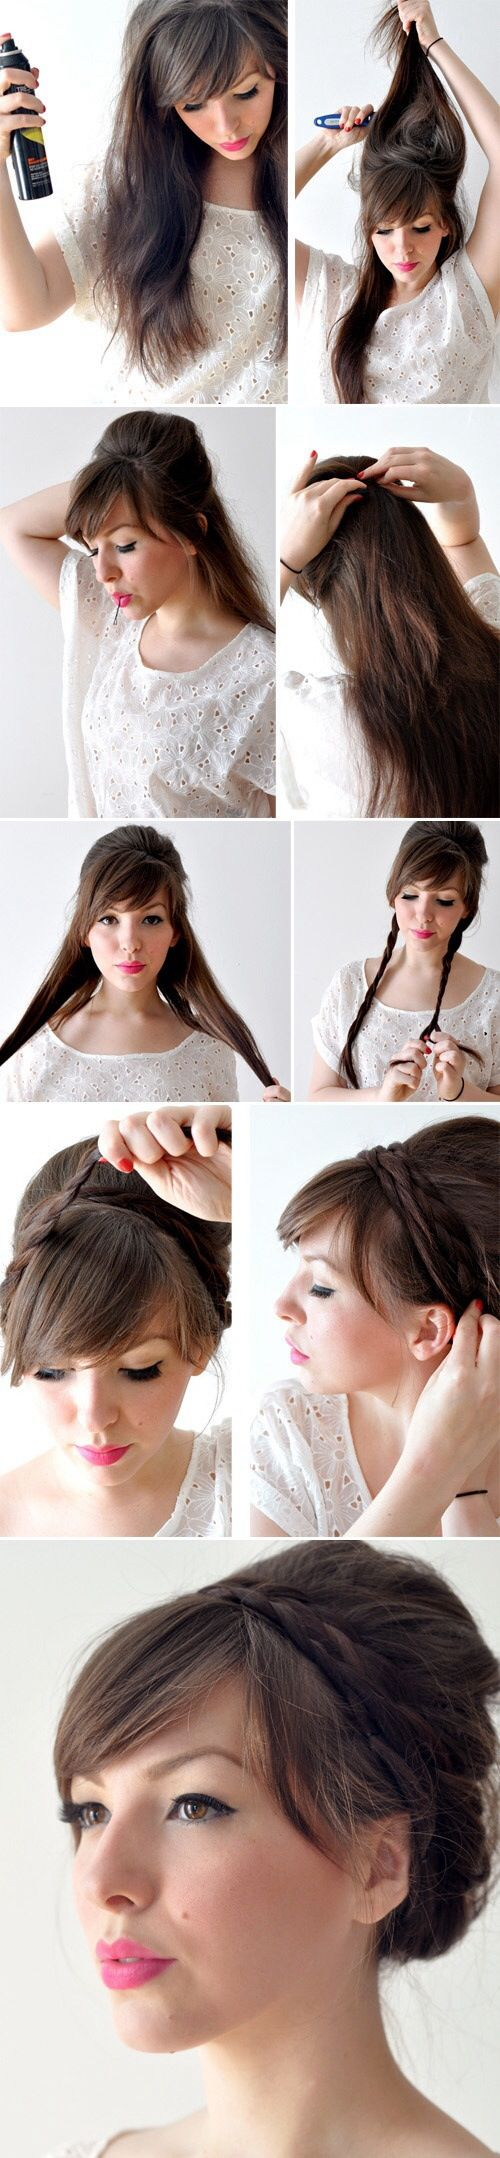 best curls images on pinterest braids casual hairstyles and